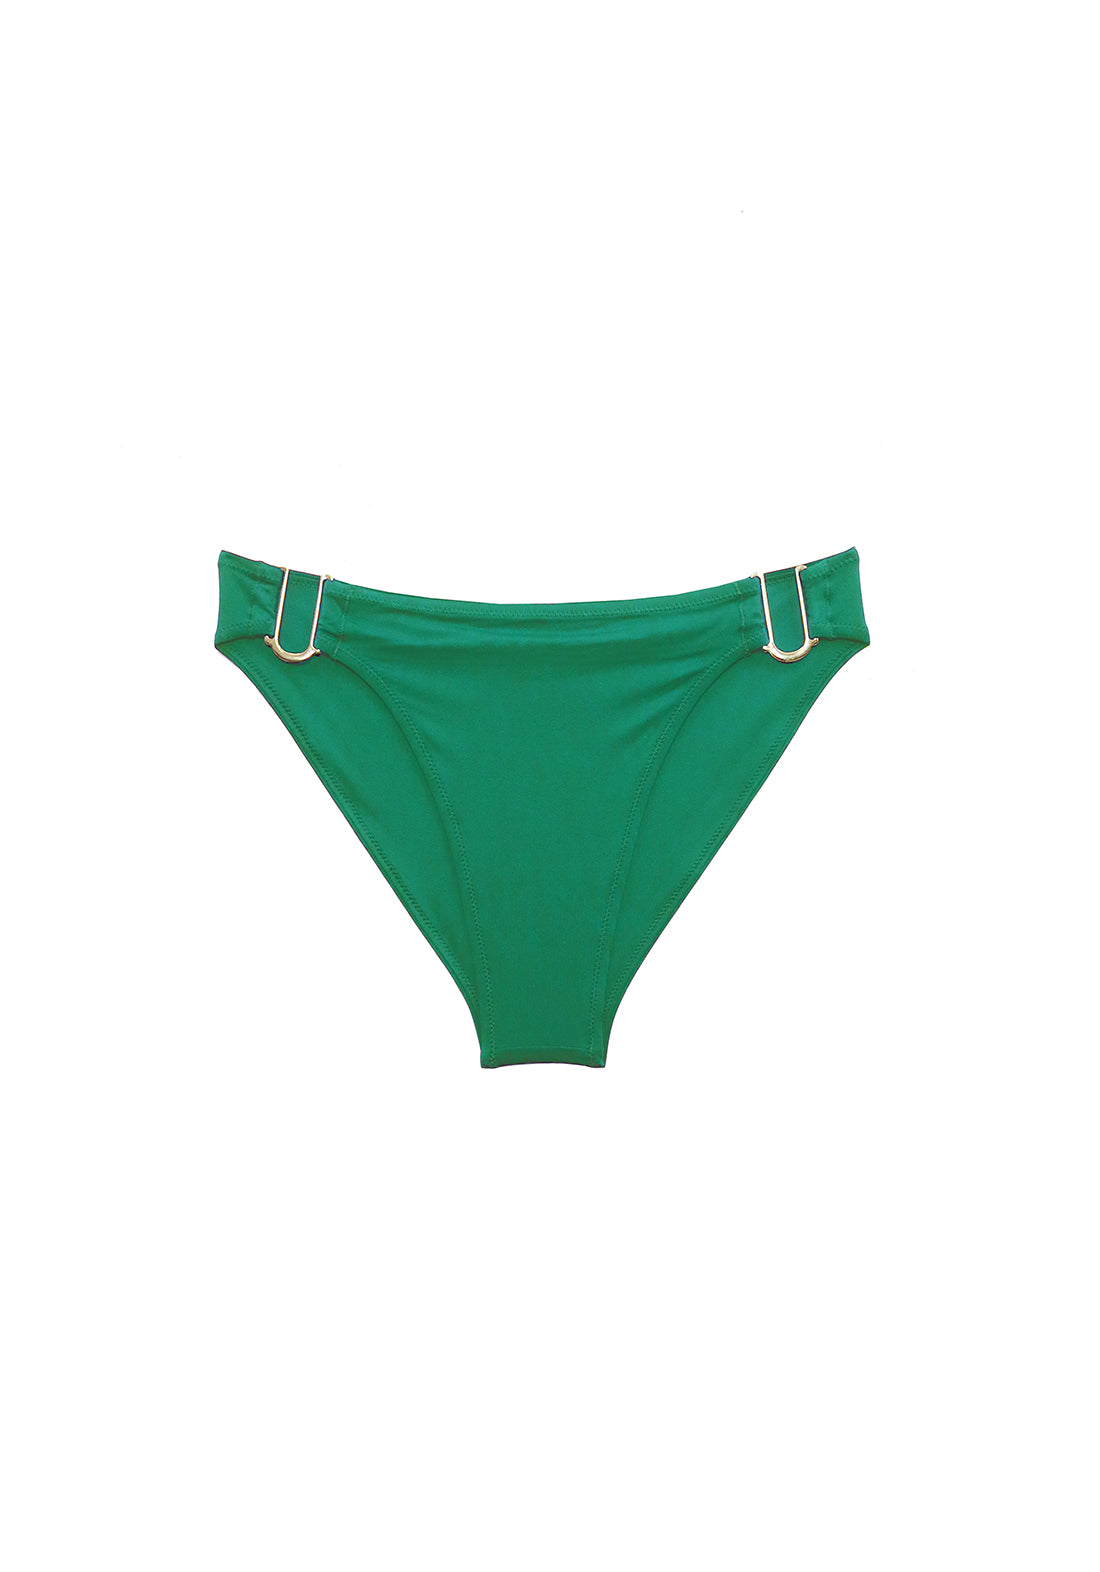 Rêve d'Été Bikini Brief in Green - I.D. Sarrieri